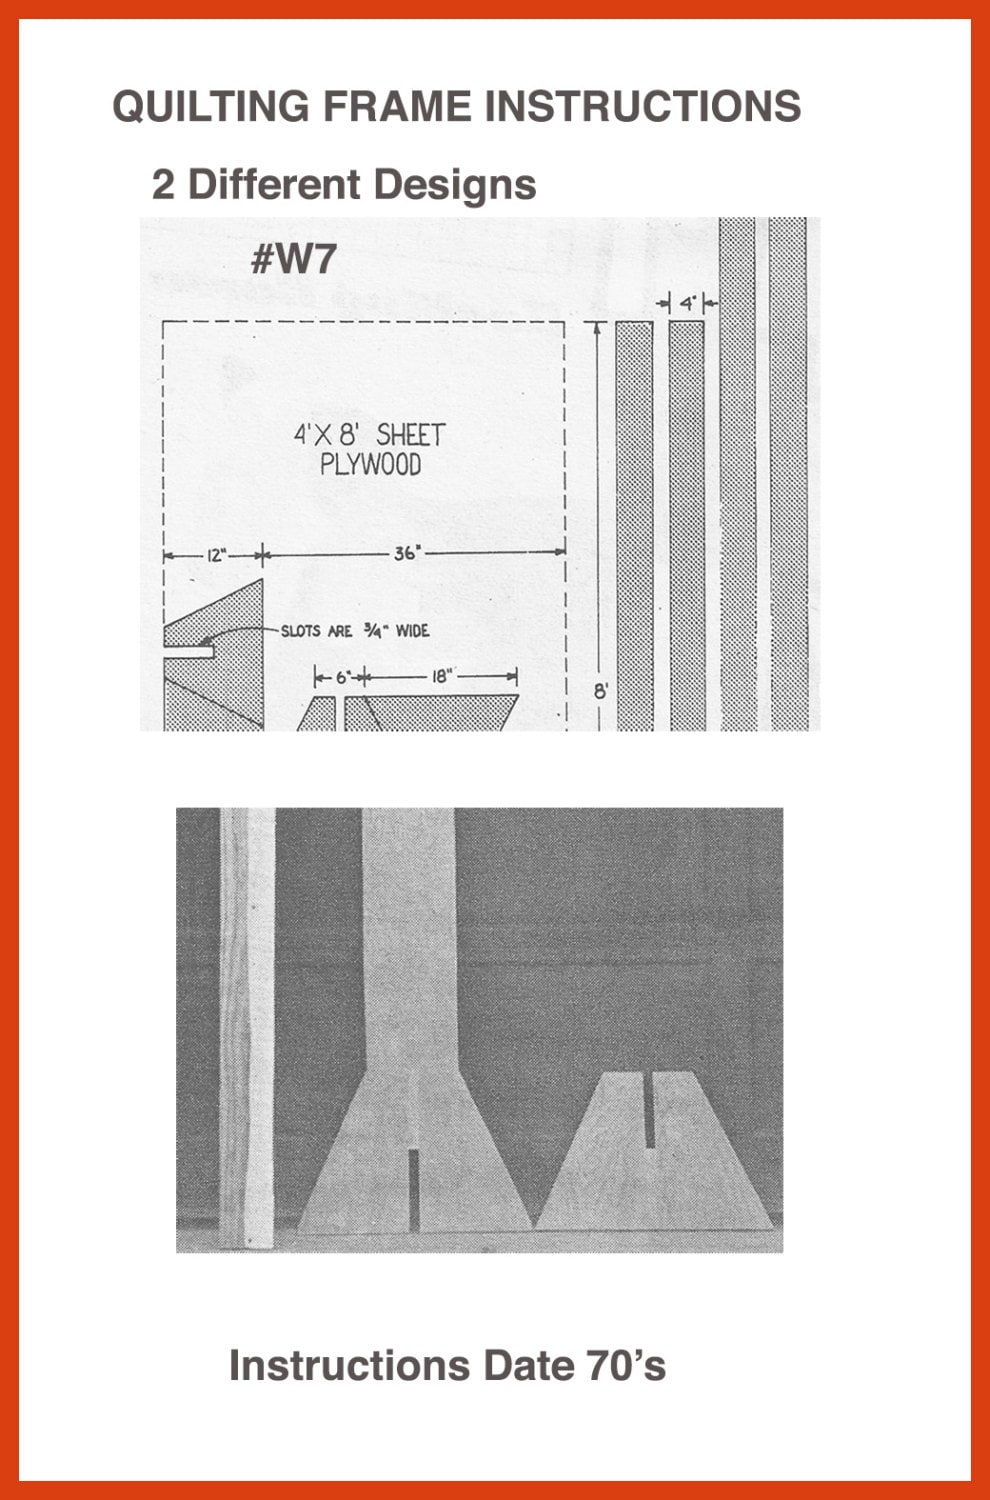 Quilt Frame Woodworking Pattern Instructions For 2 Designs Of